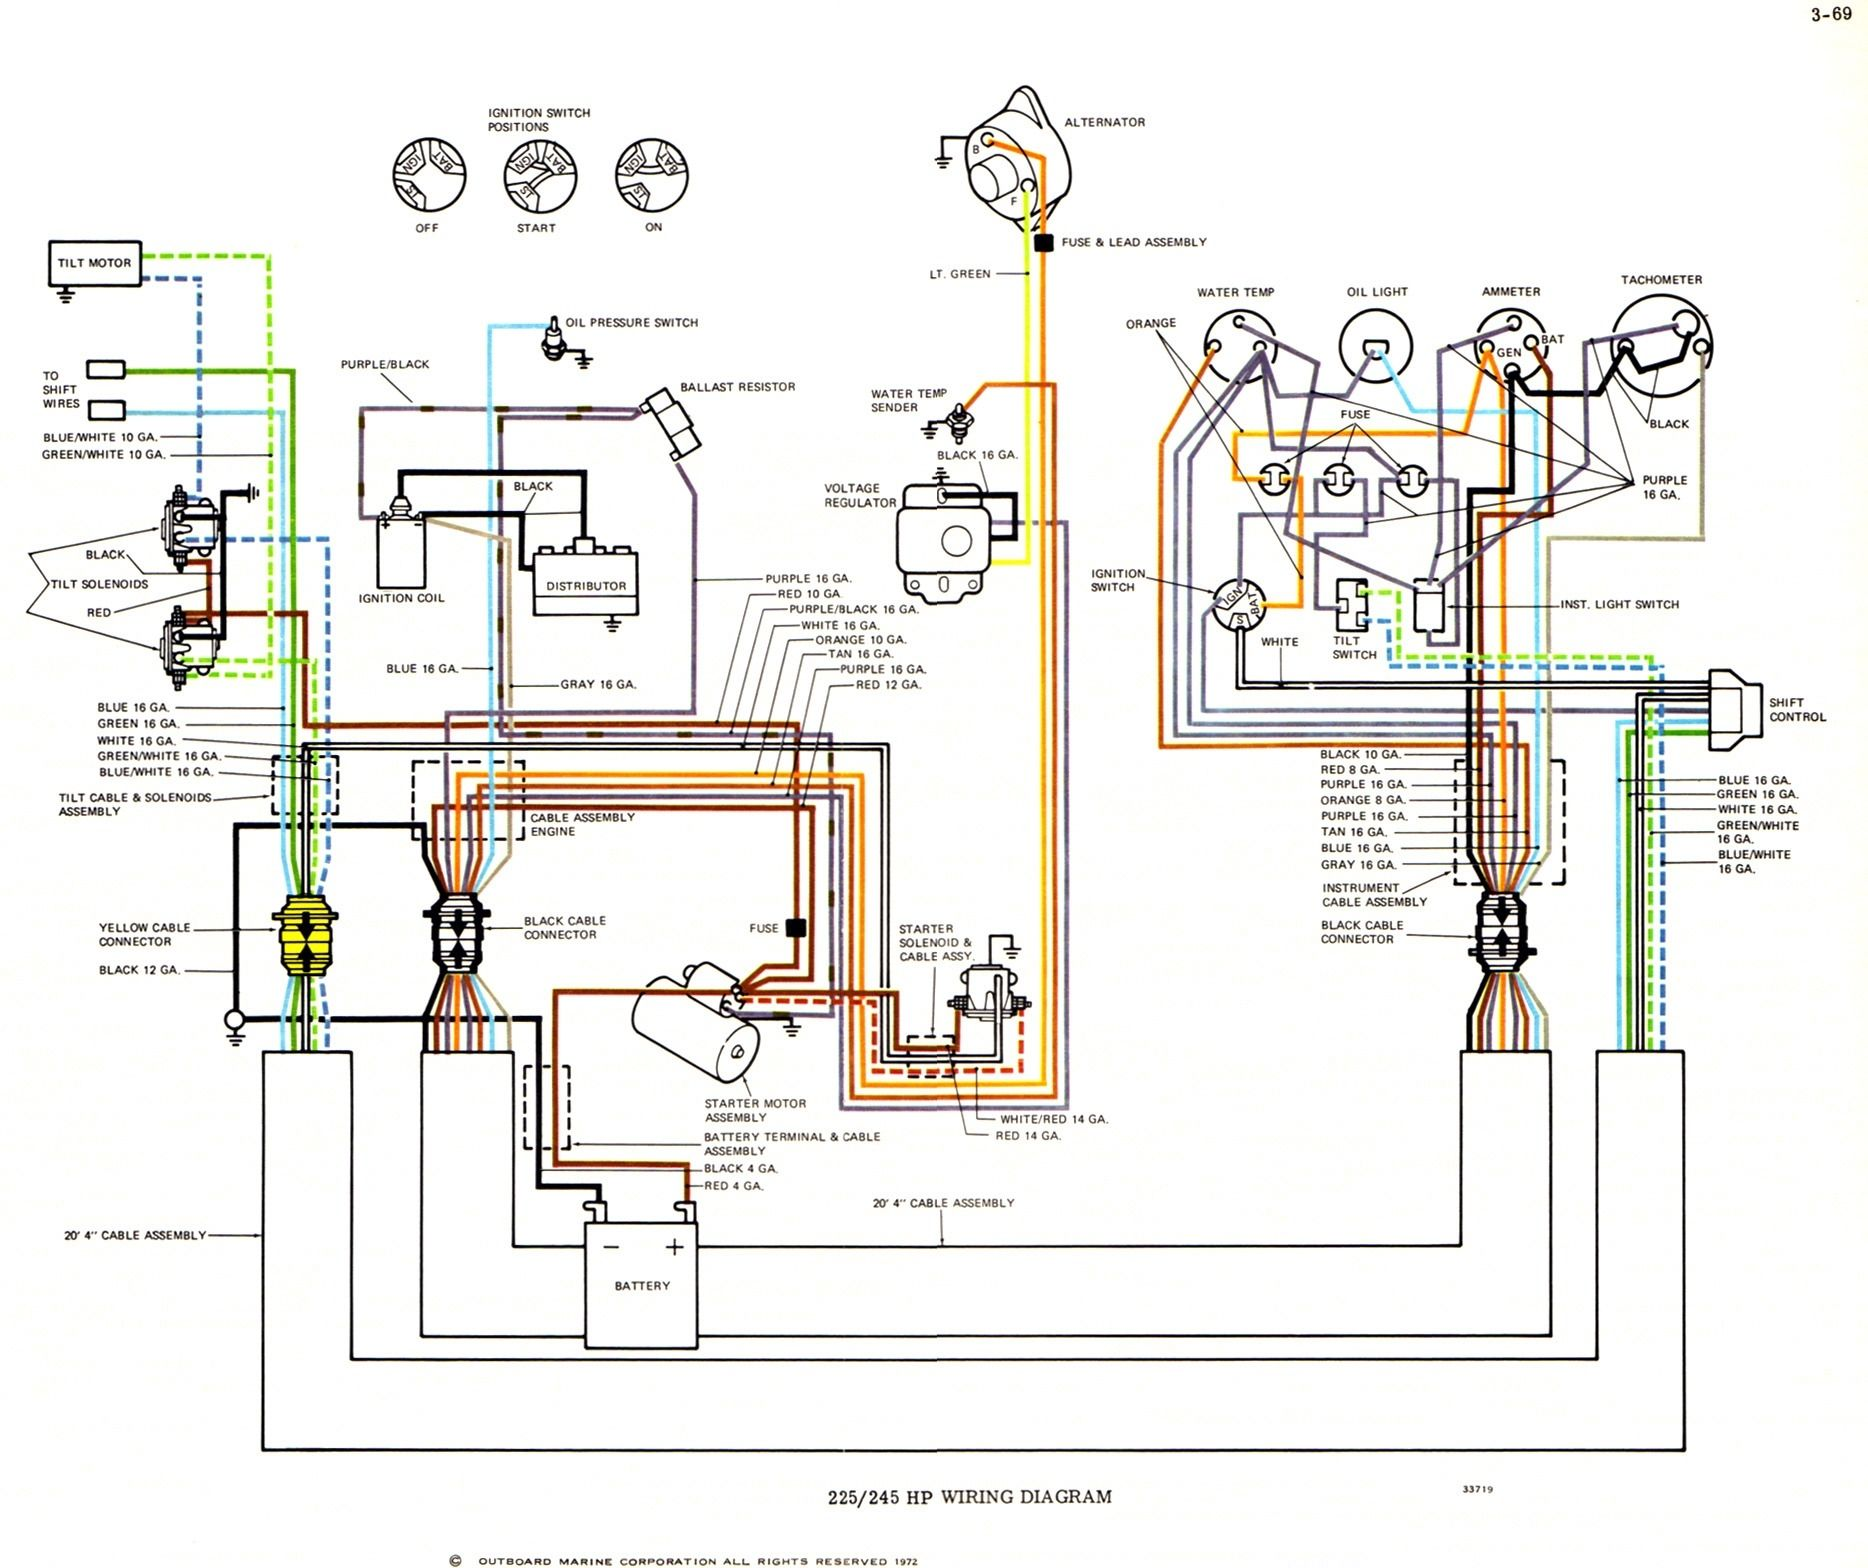 Yamaha Outboard Electrical Wiring Diagram Wiringdiagramorg Electric House